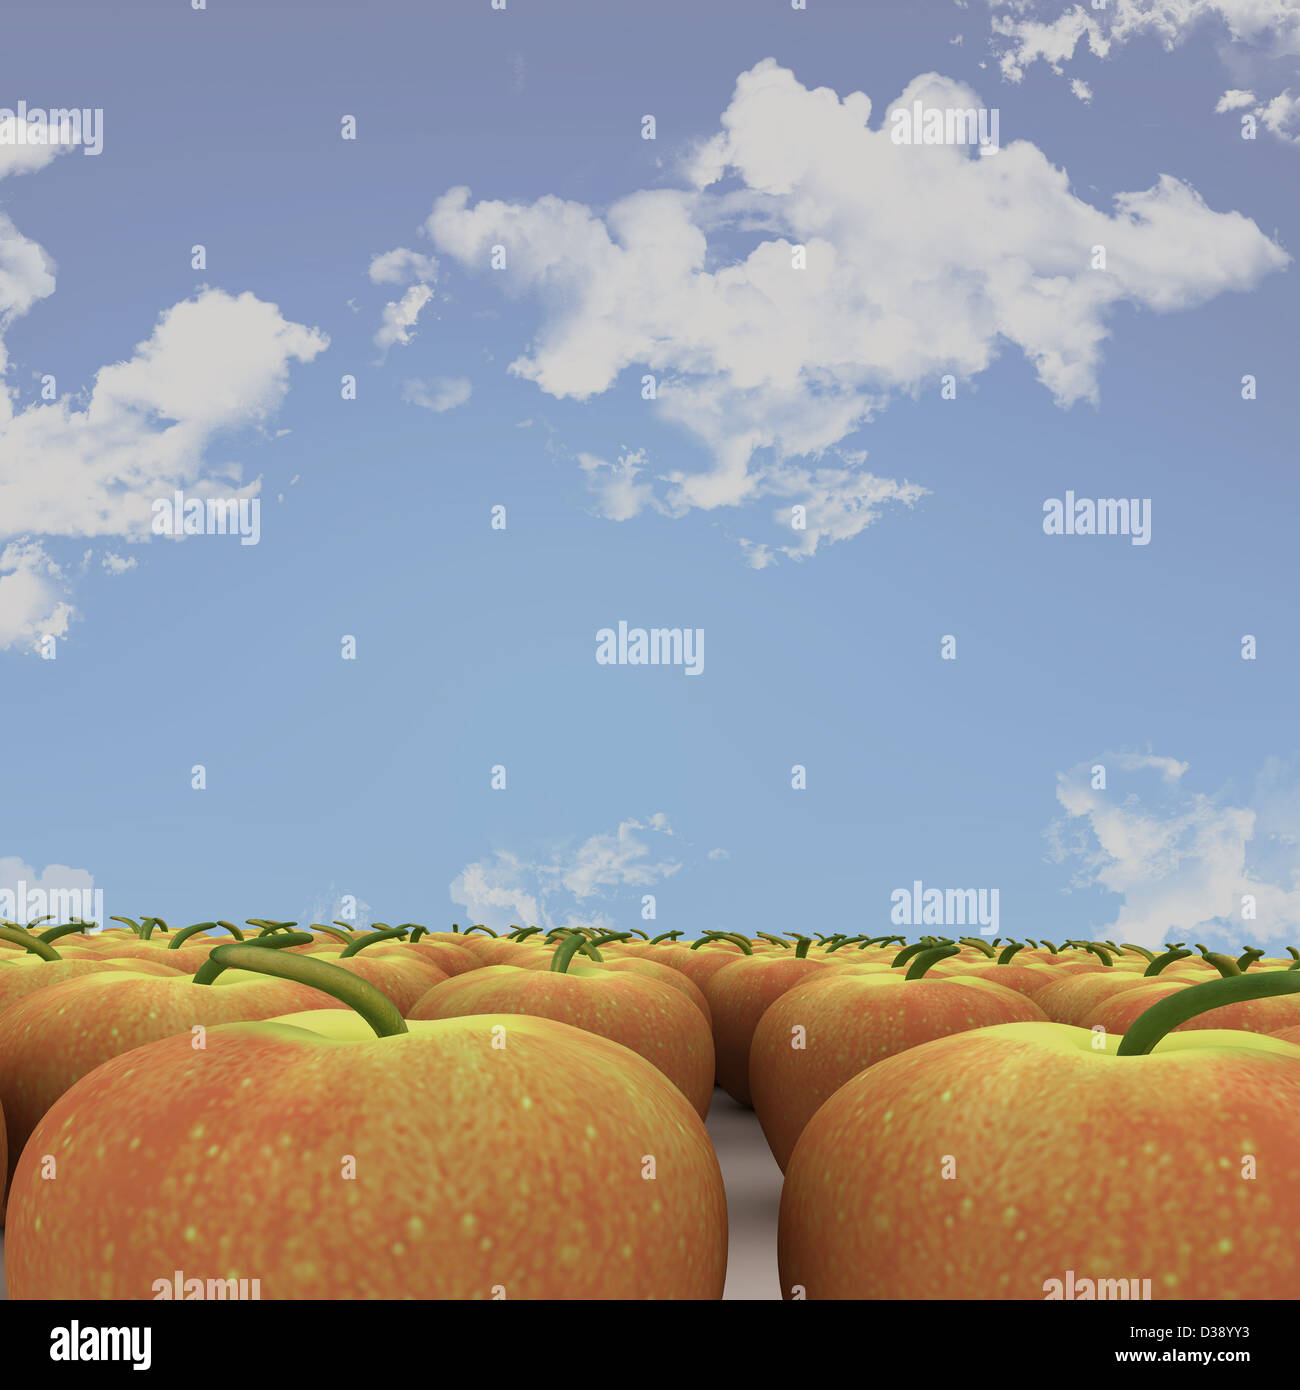 Apples arrangement under the sky - Stock Image